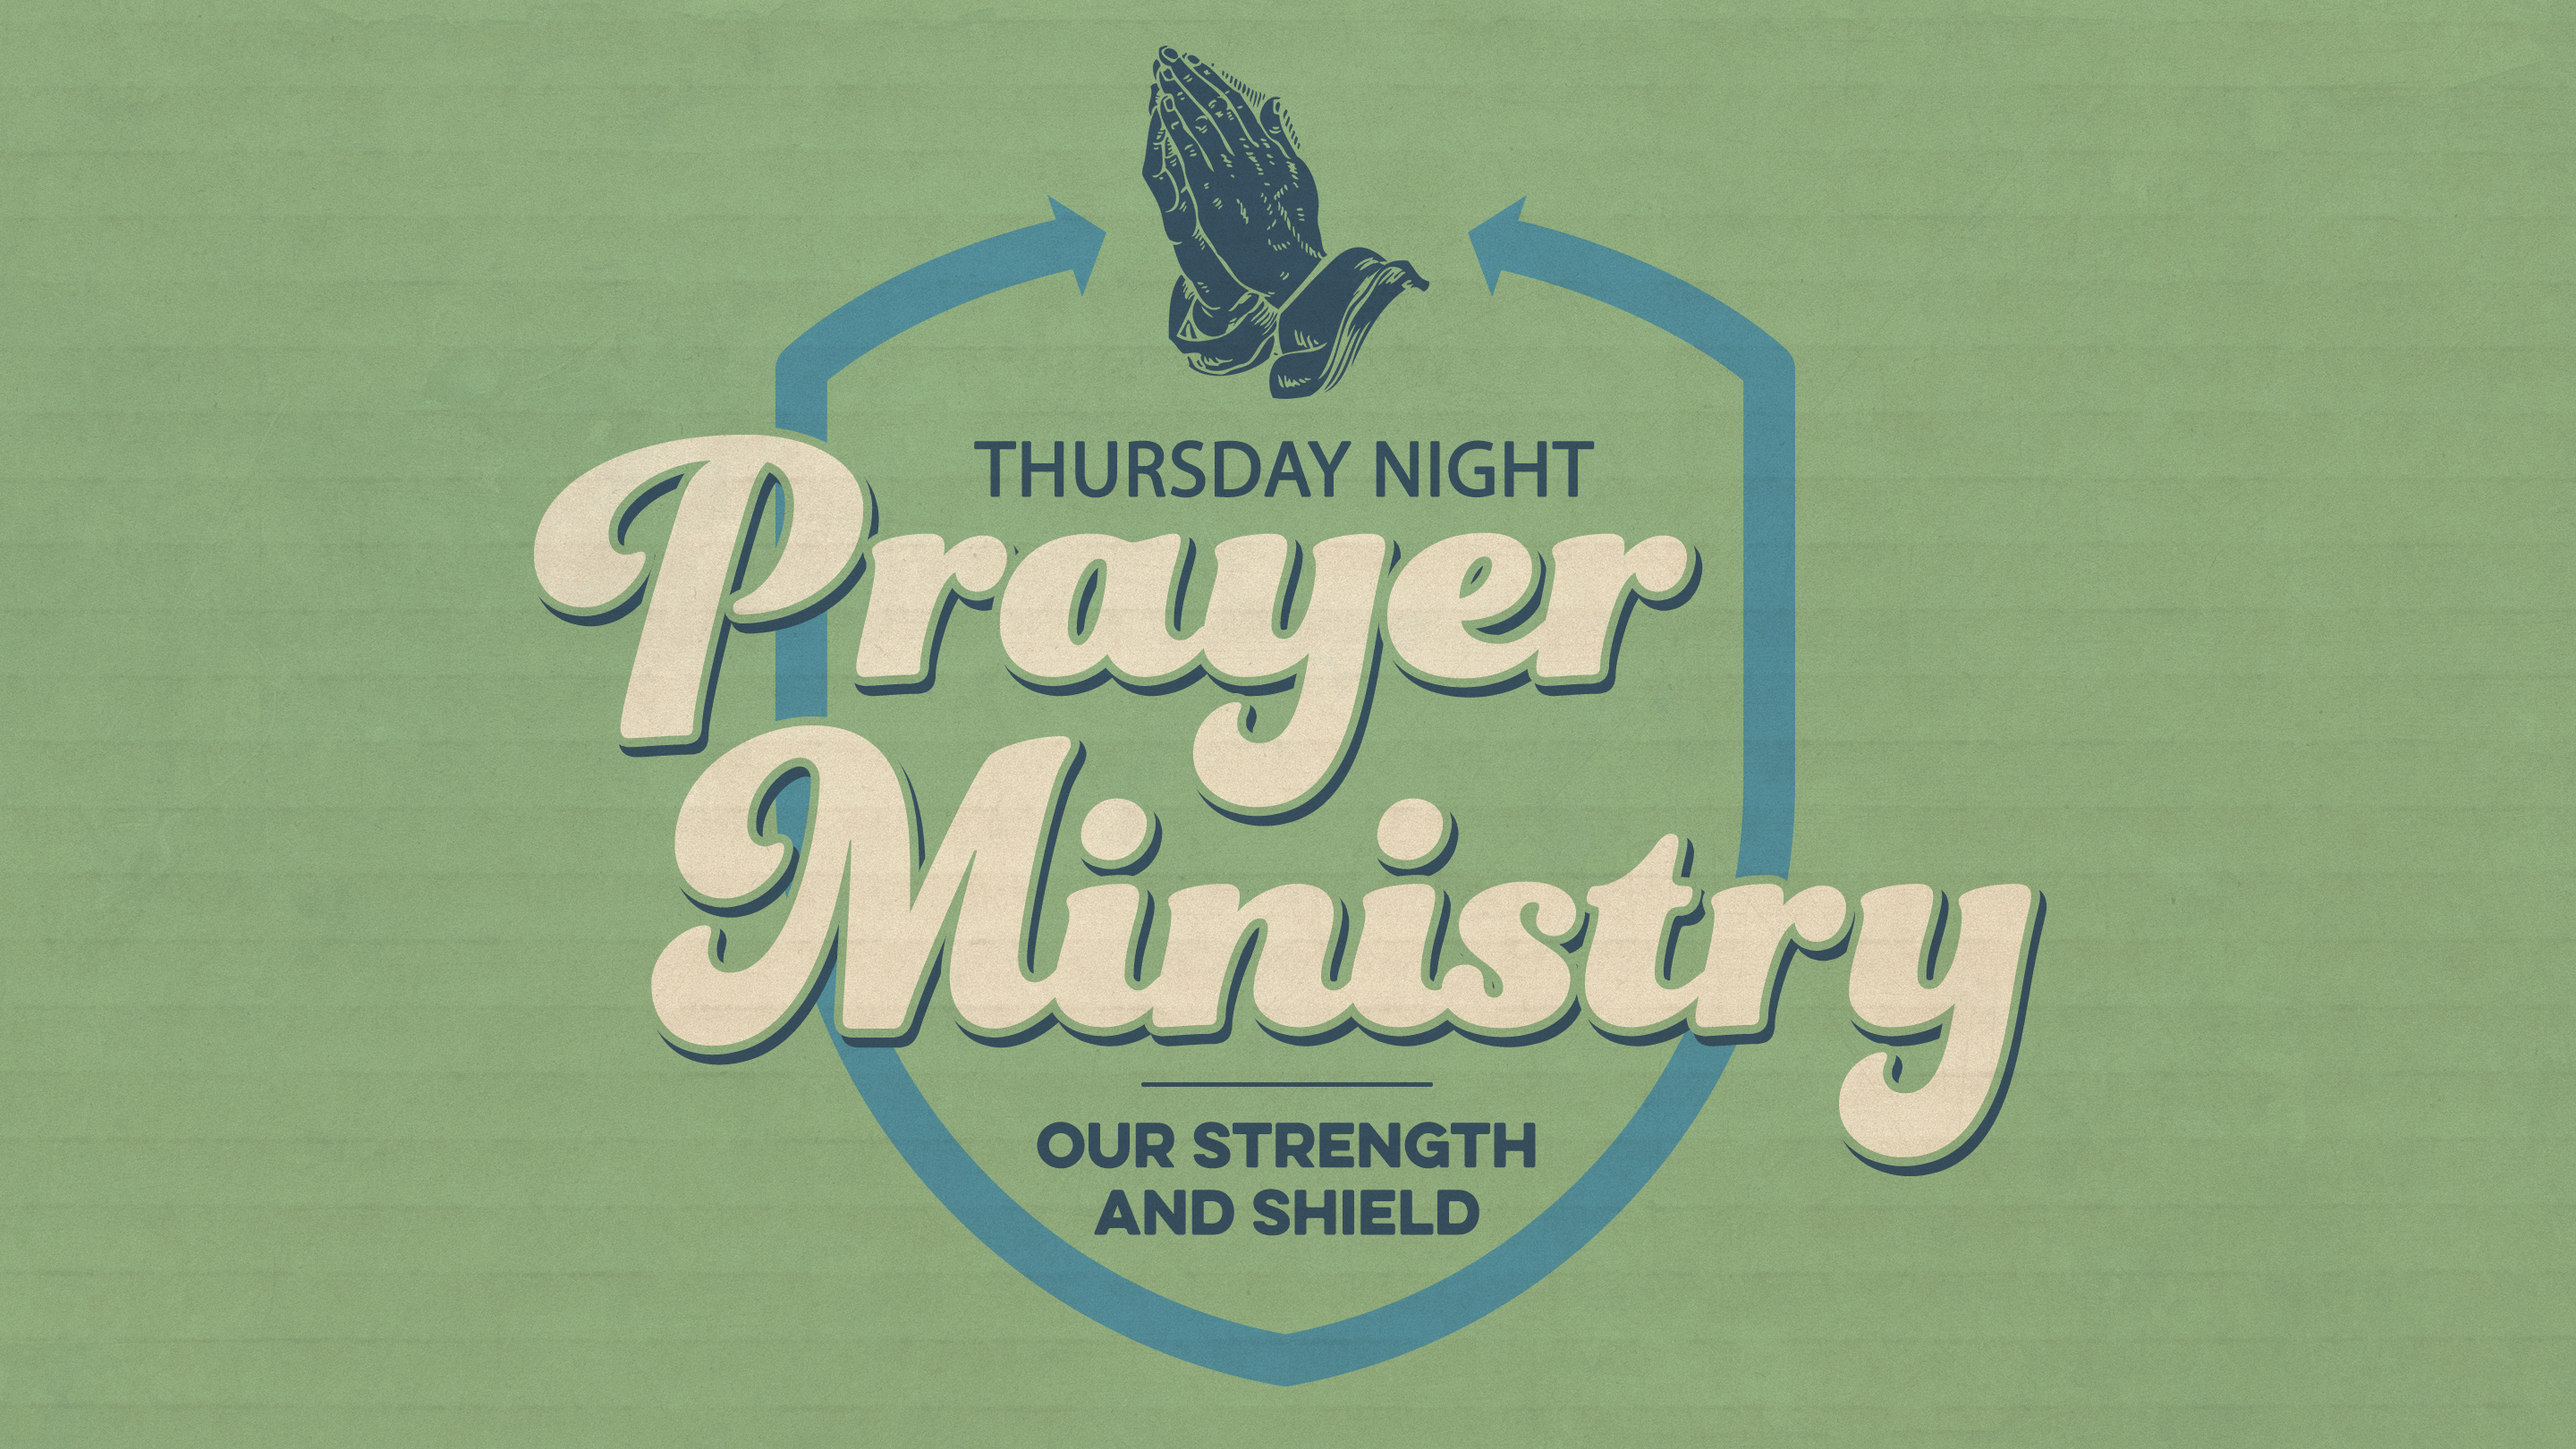 thursday_night_prayer